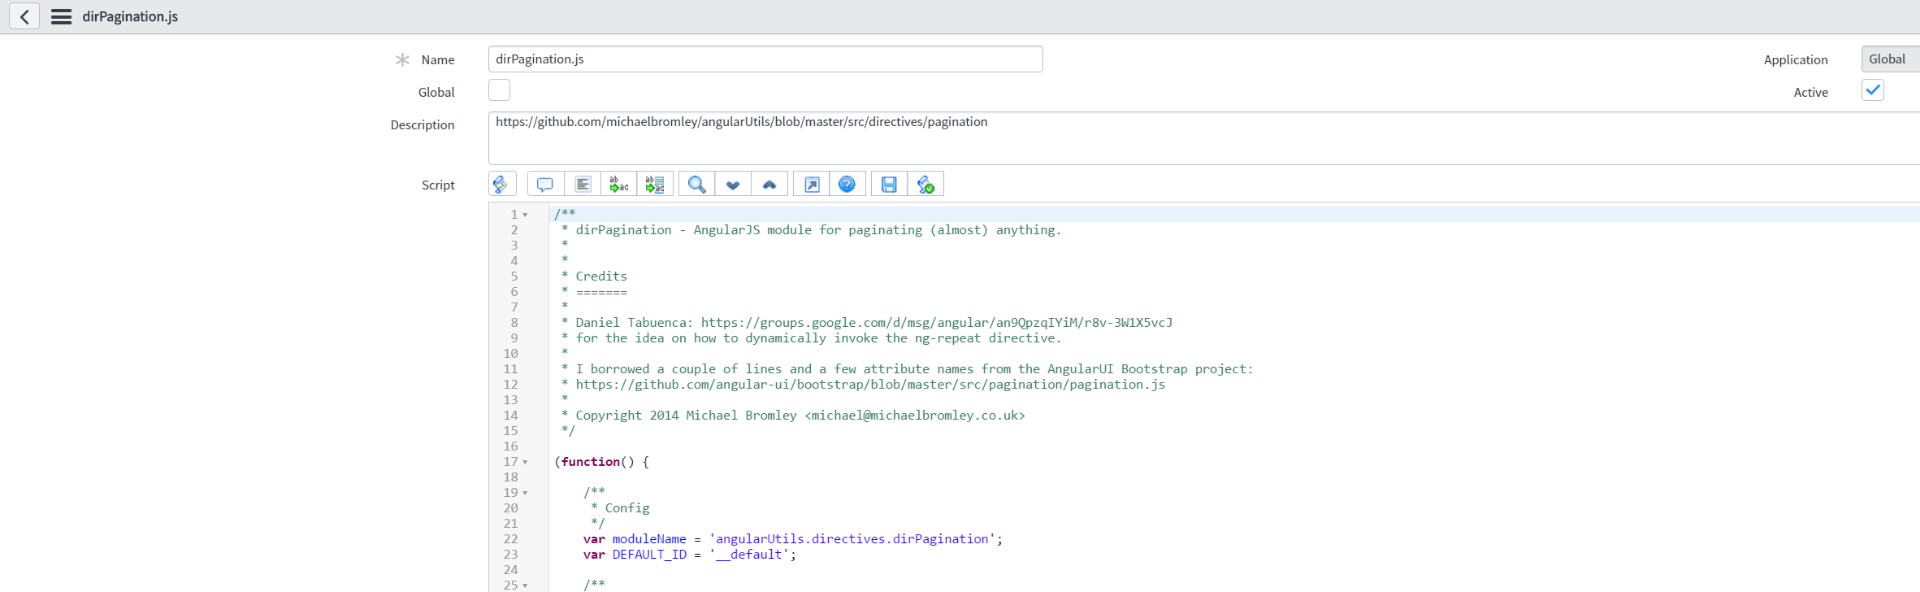 How to add directive to widget serviceportal - Developer